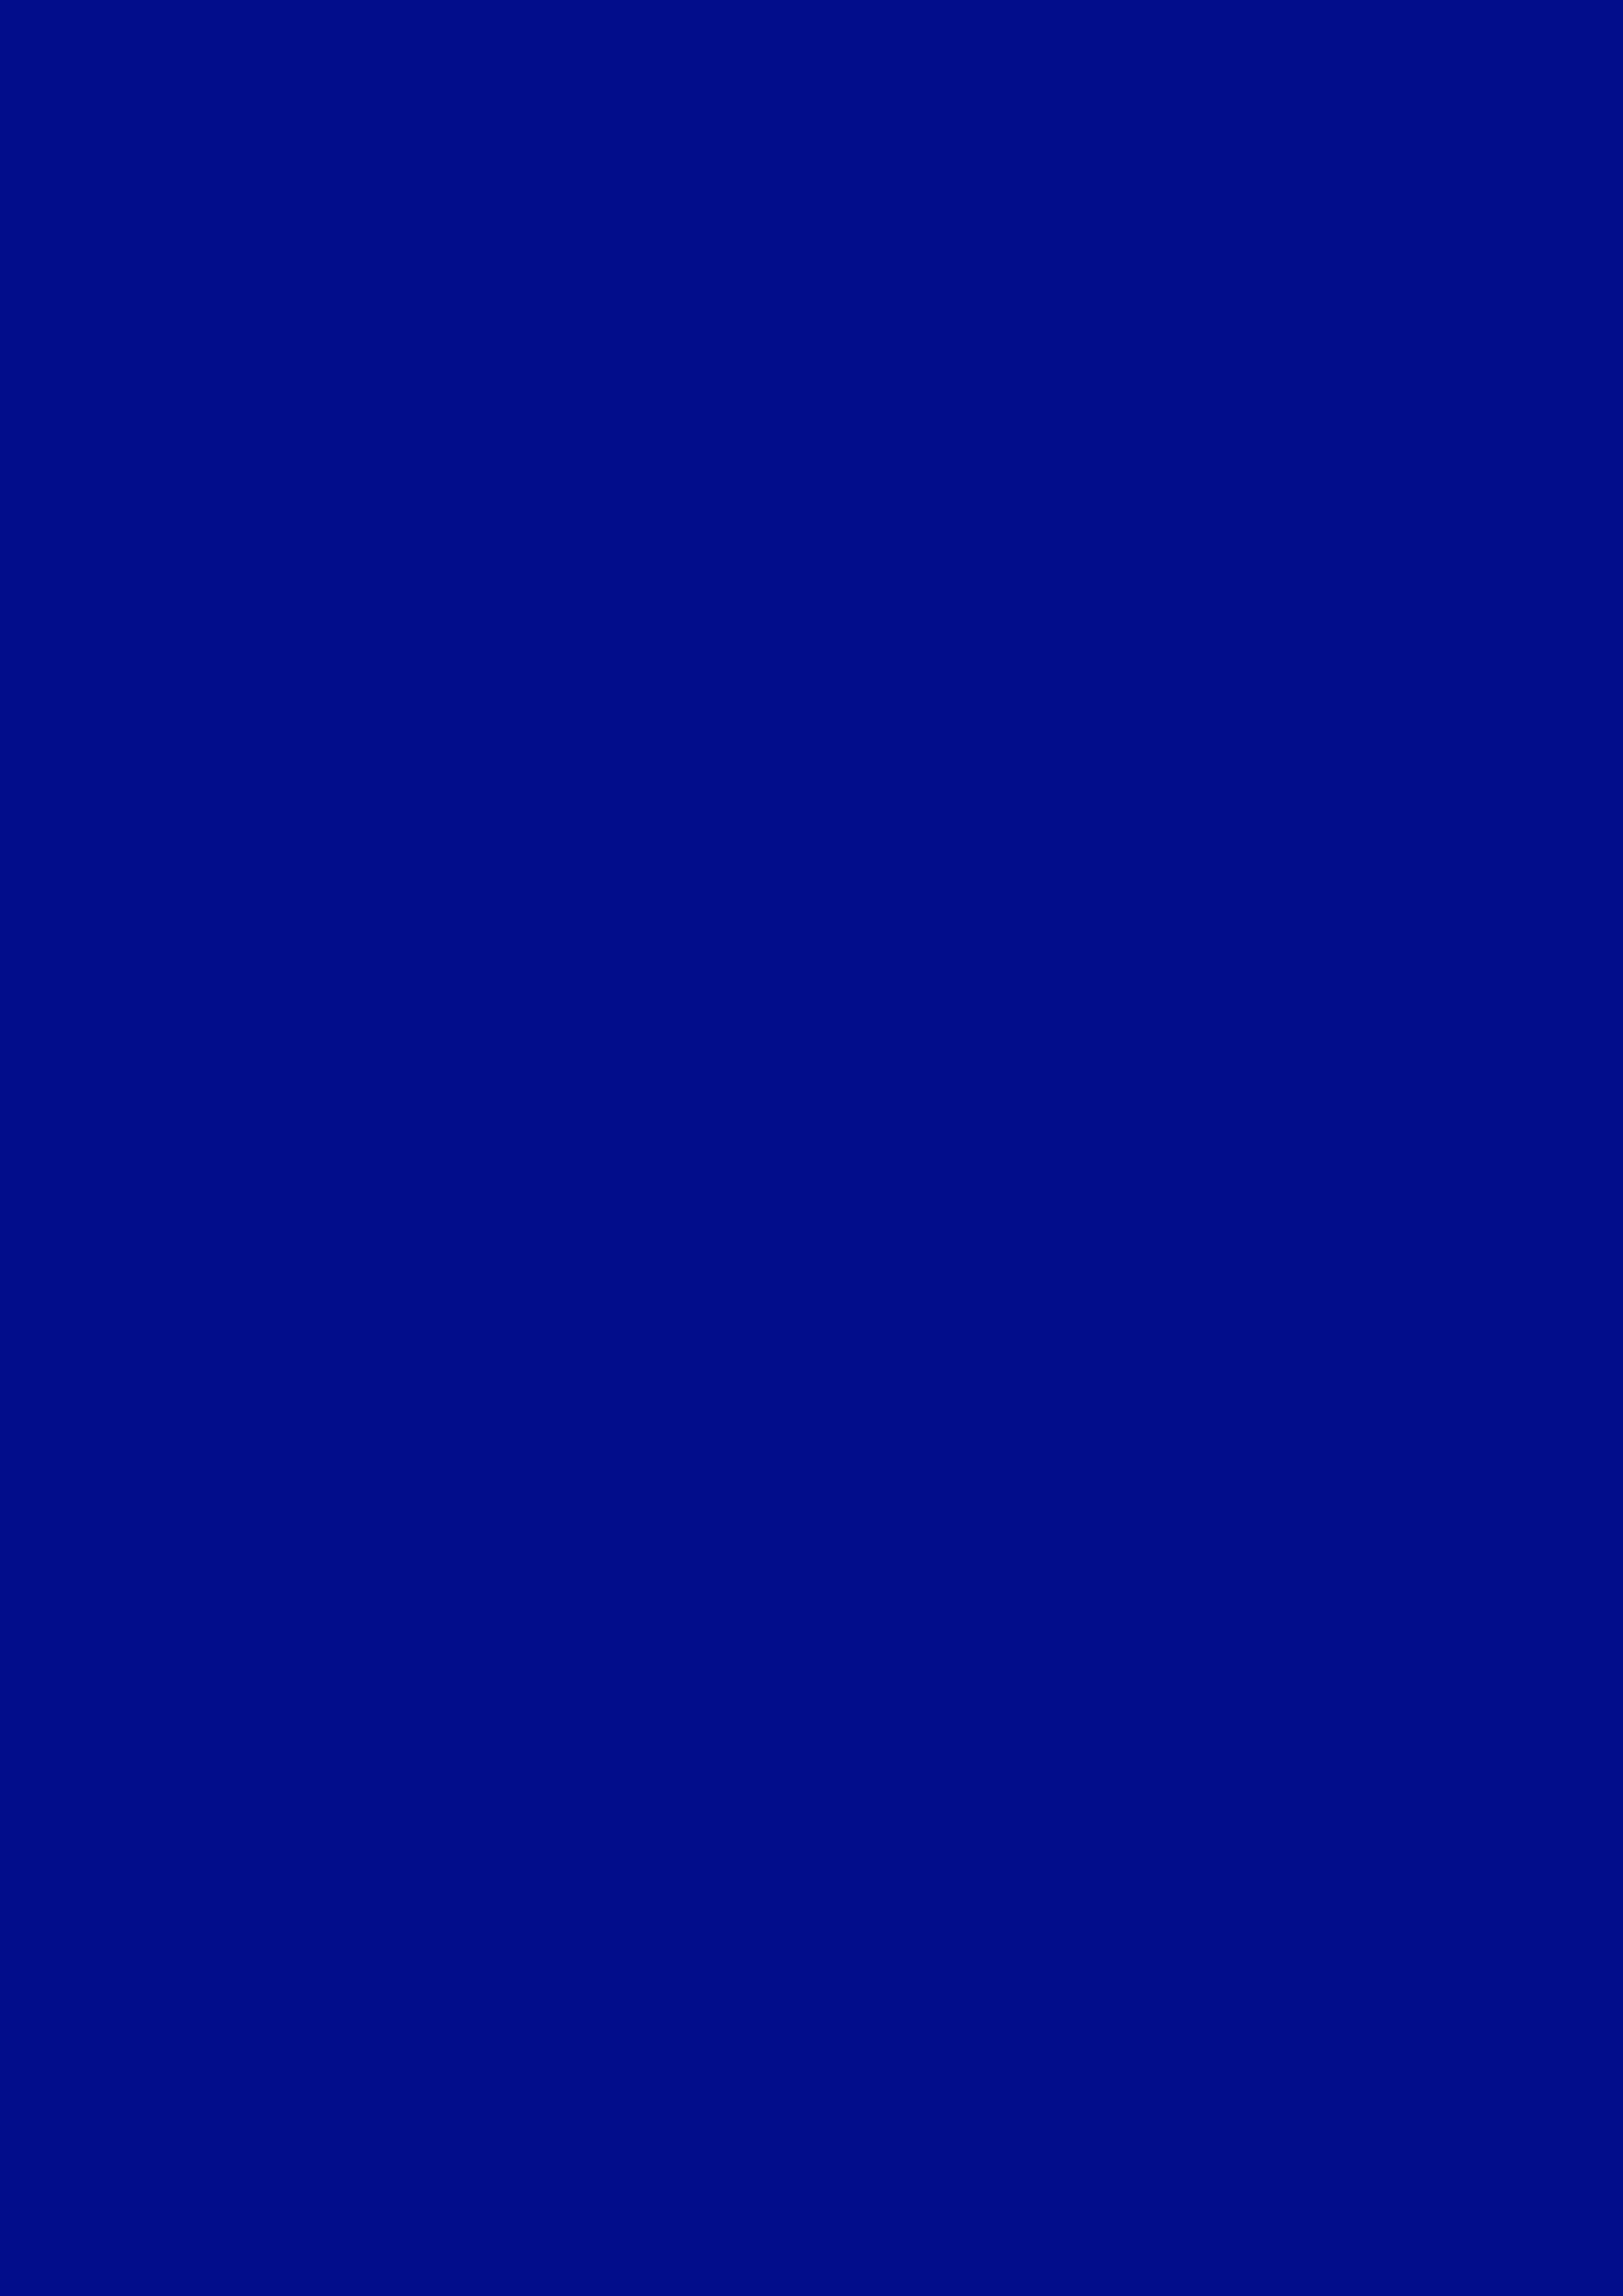 2480x3508 Phthalo Blue Solid Color Background